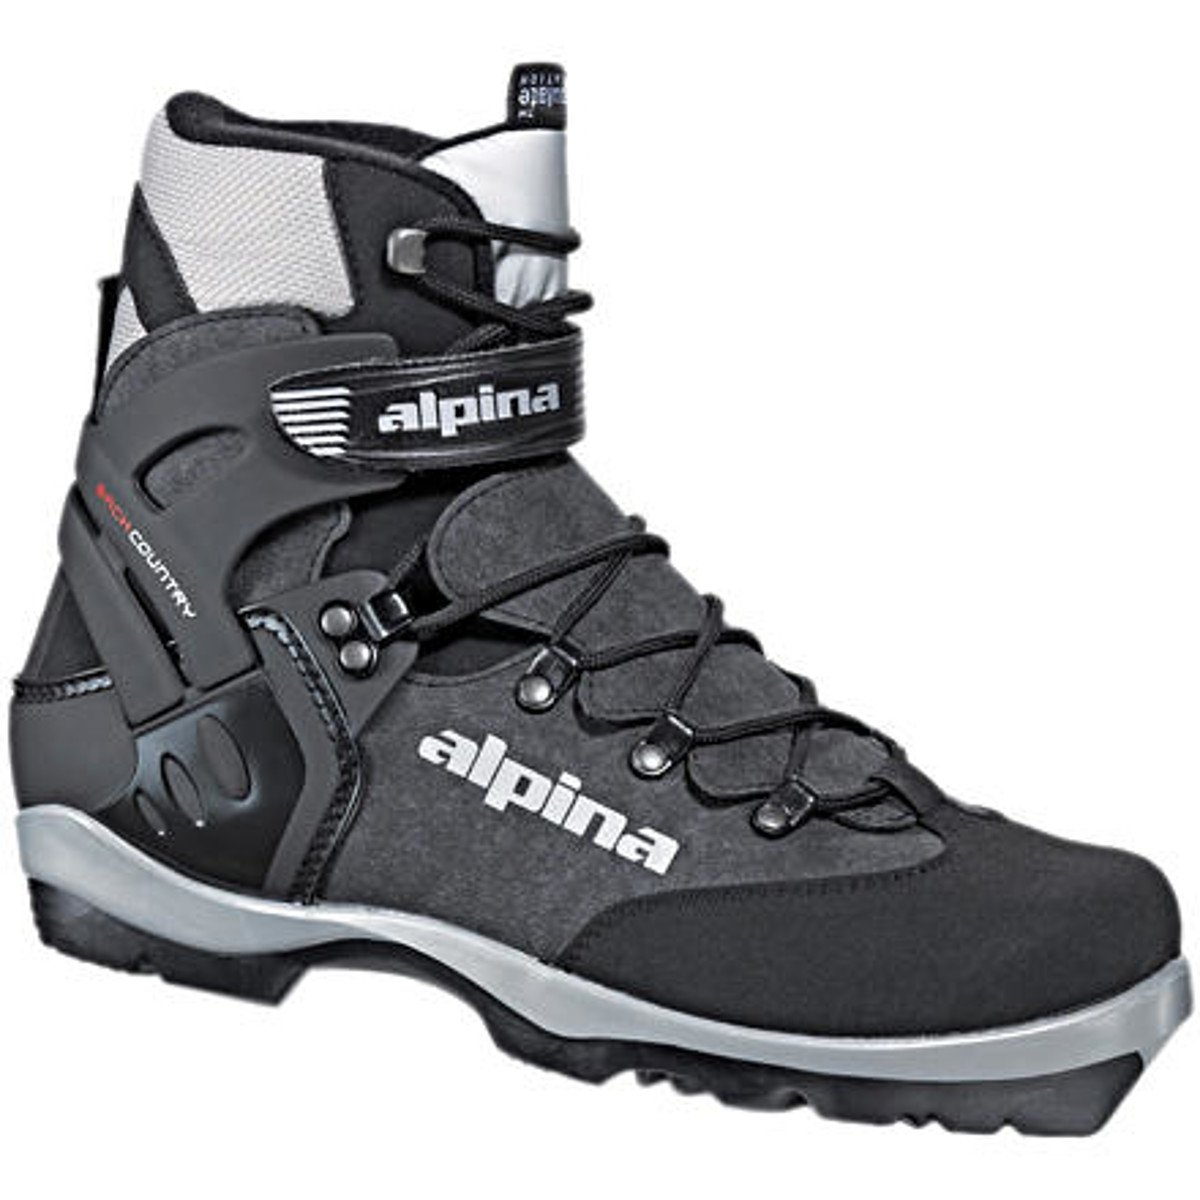 Alpina BC 1550 Backcountry Boot Black/Silver, 42.0 by Alpina